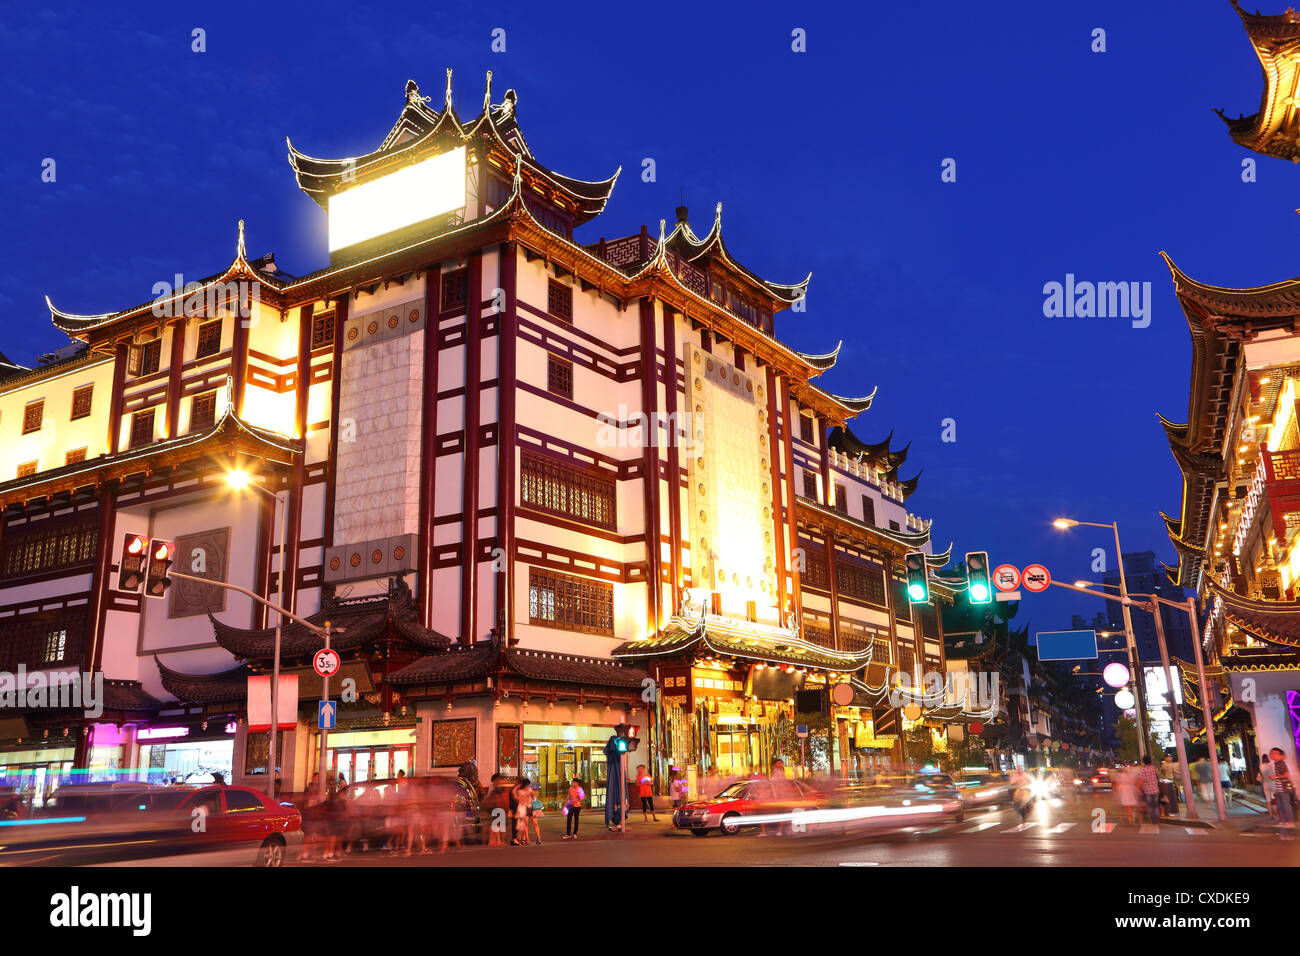 Shopping area in Shanghai, China - Stock Image